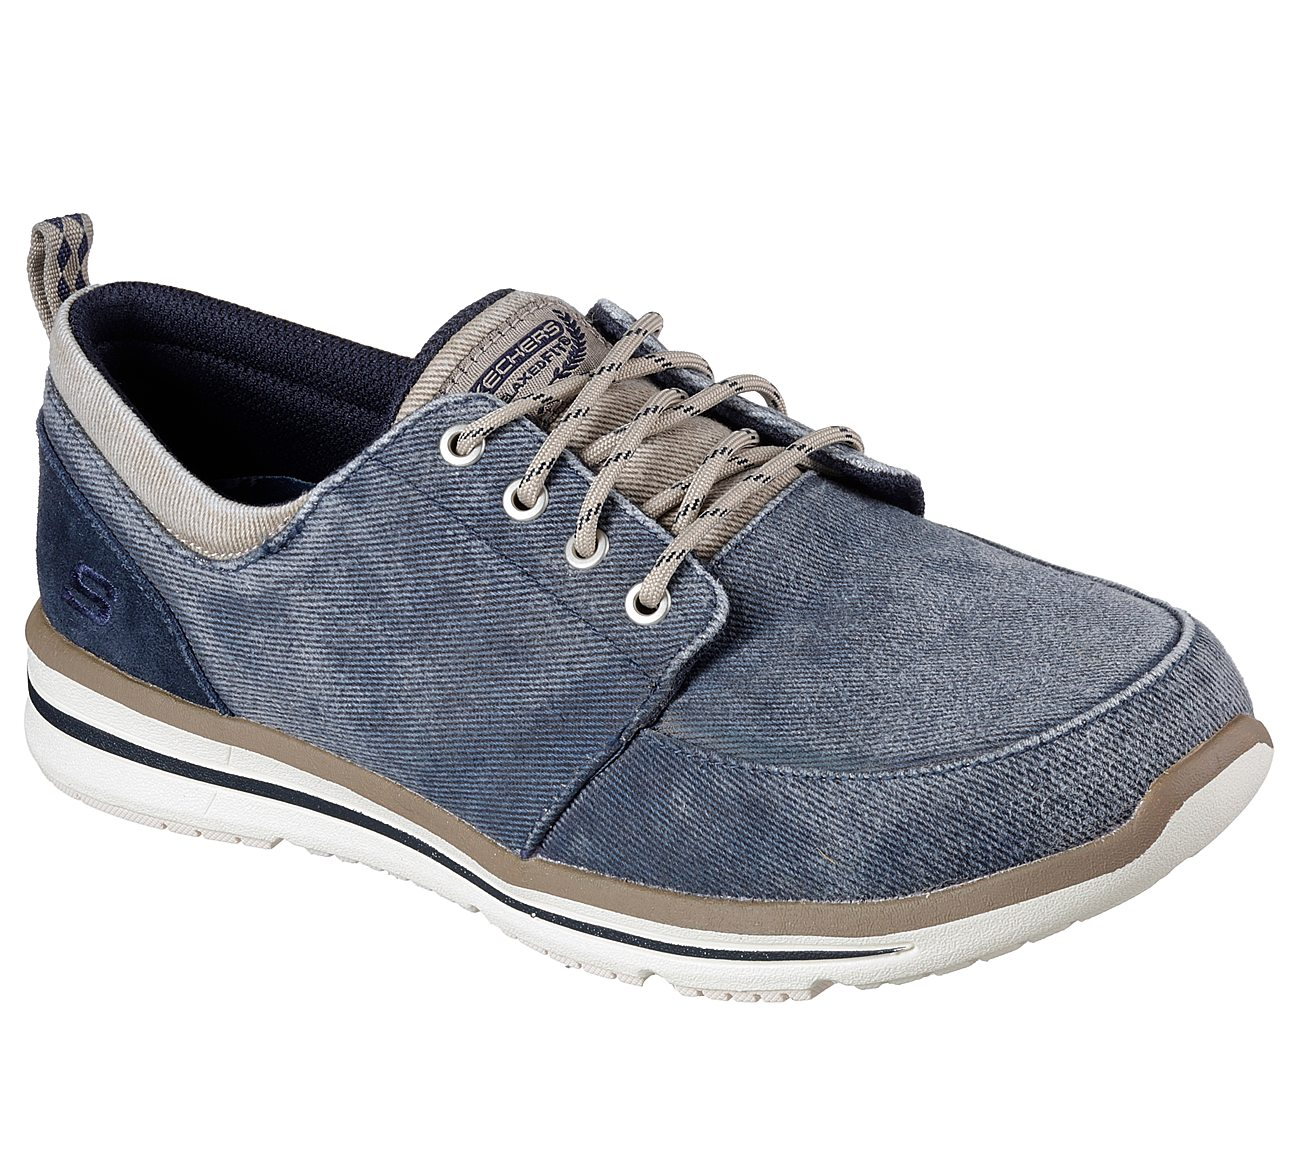 Hover to zoom. NAVY/NATURAL